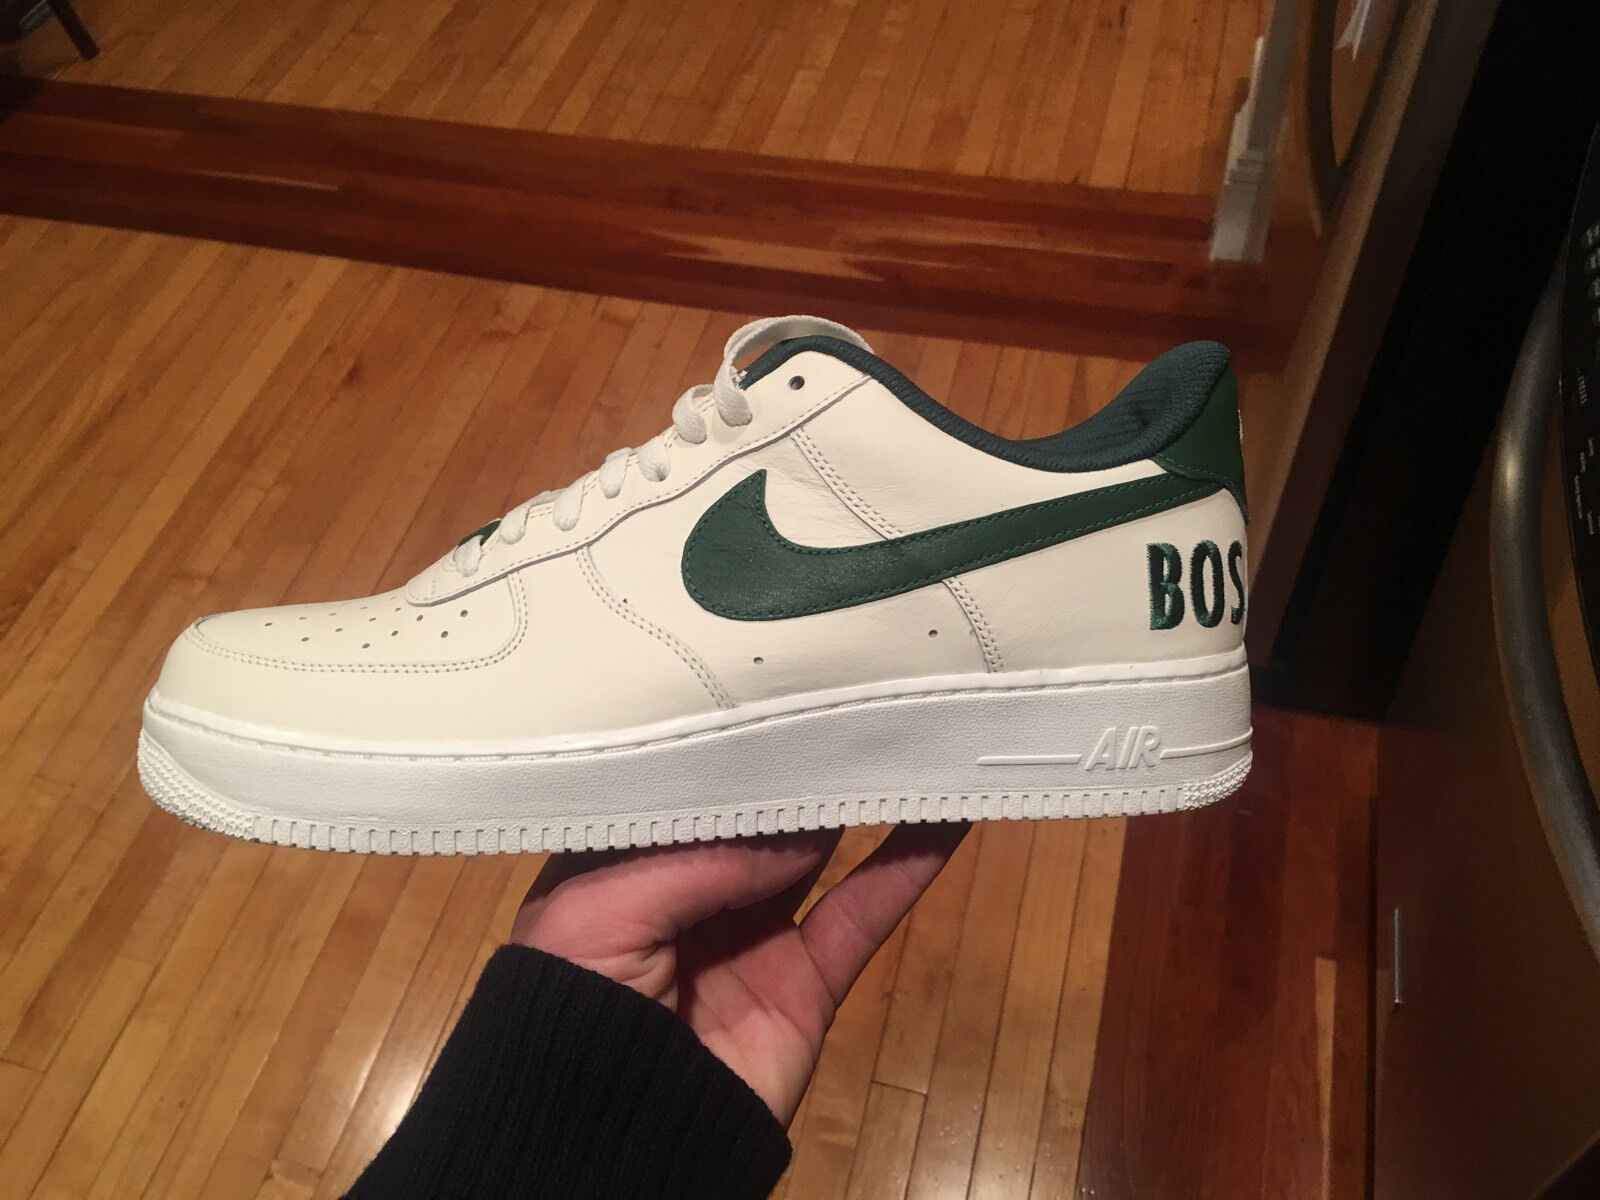 Nike Air Force 1 Low Boston Celtics Sz 11.5 1 Of 5 ID One AF1 Sail Green IT4 PE Comfortable and good-looking